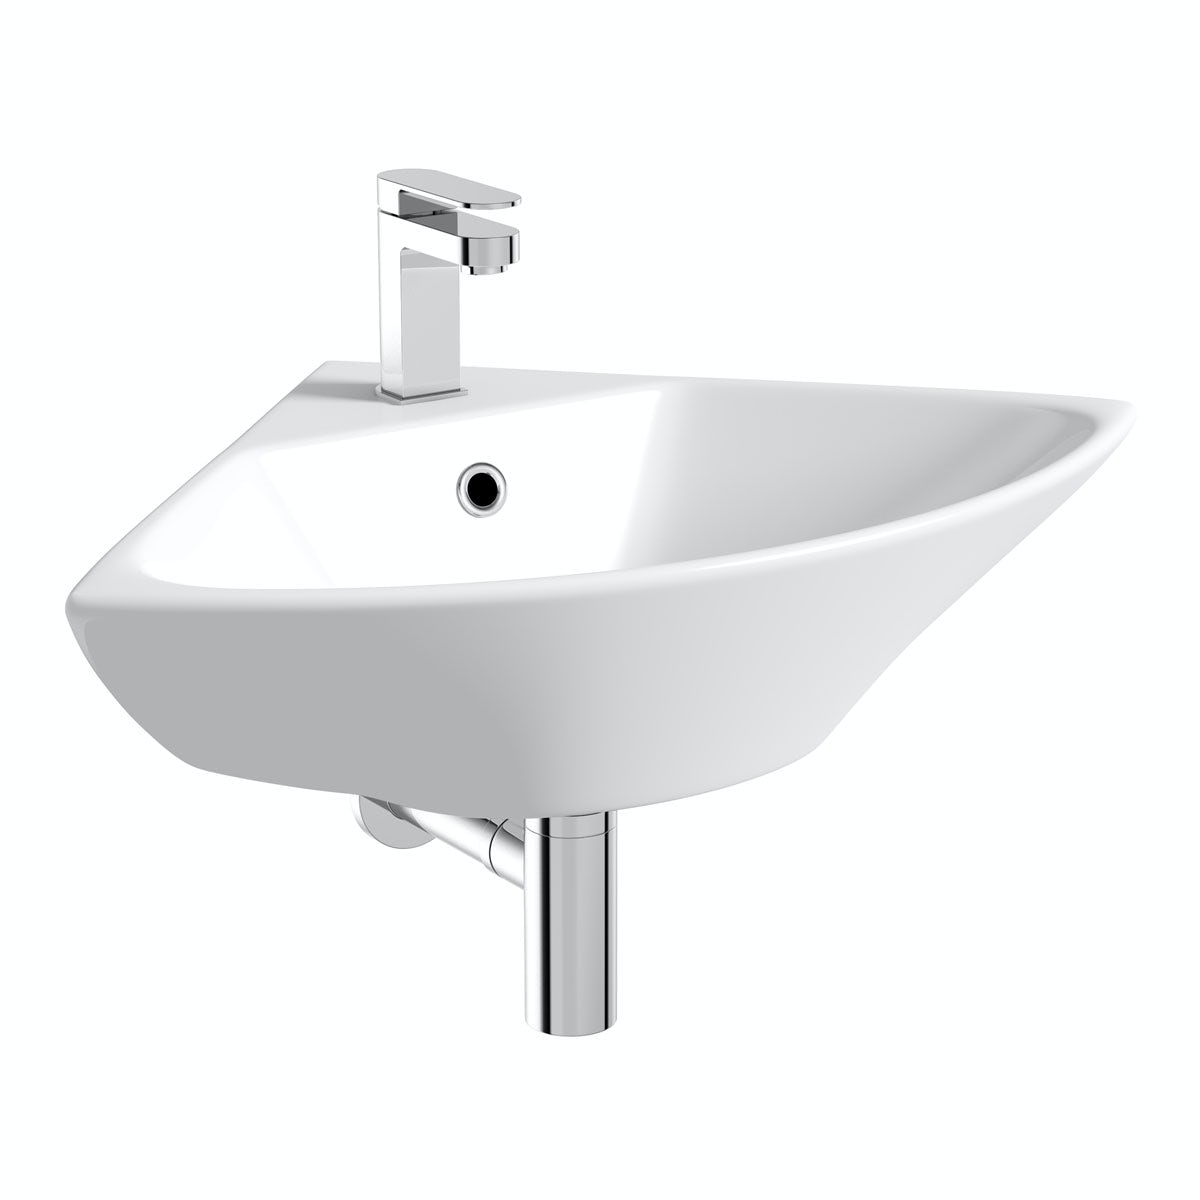 Orchard Derwent corner 1 tap hole cloakroom wall mounted basin 450mm